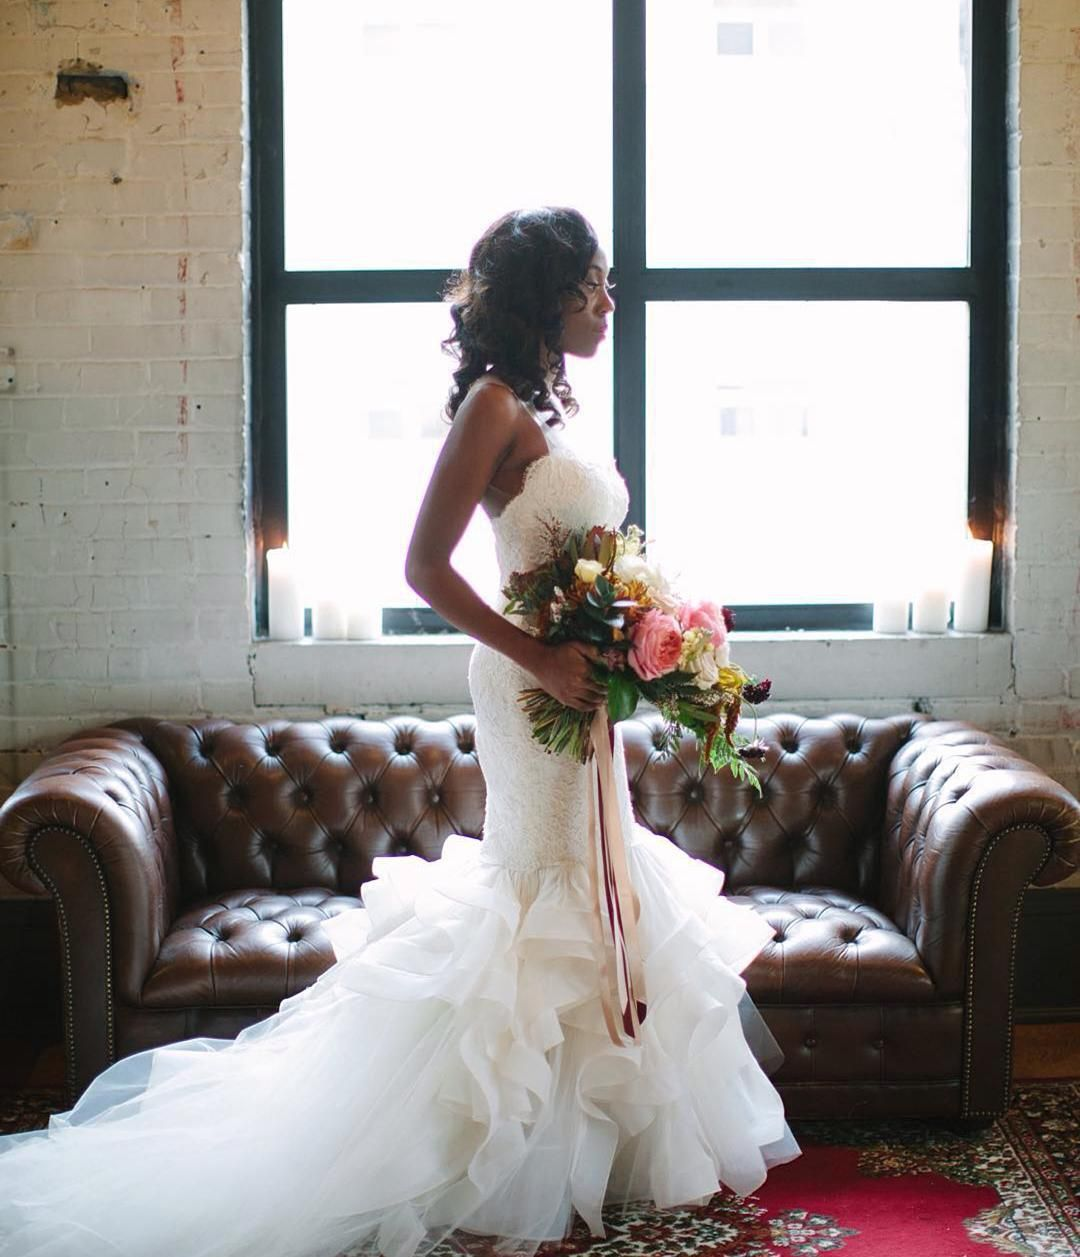 Thanks for sharing samanthaclarke sane is one gorgeous bride she